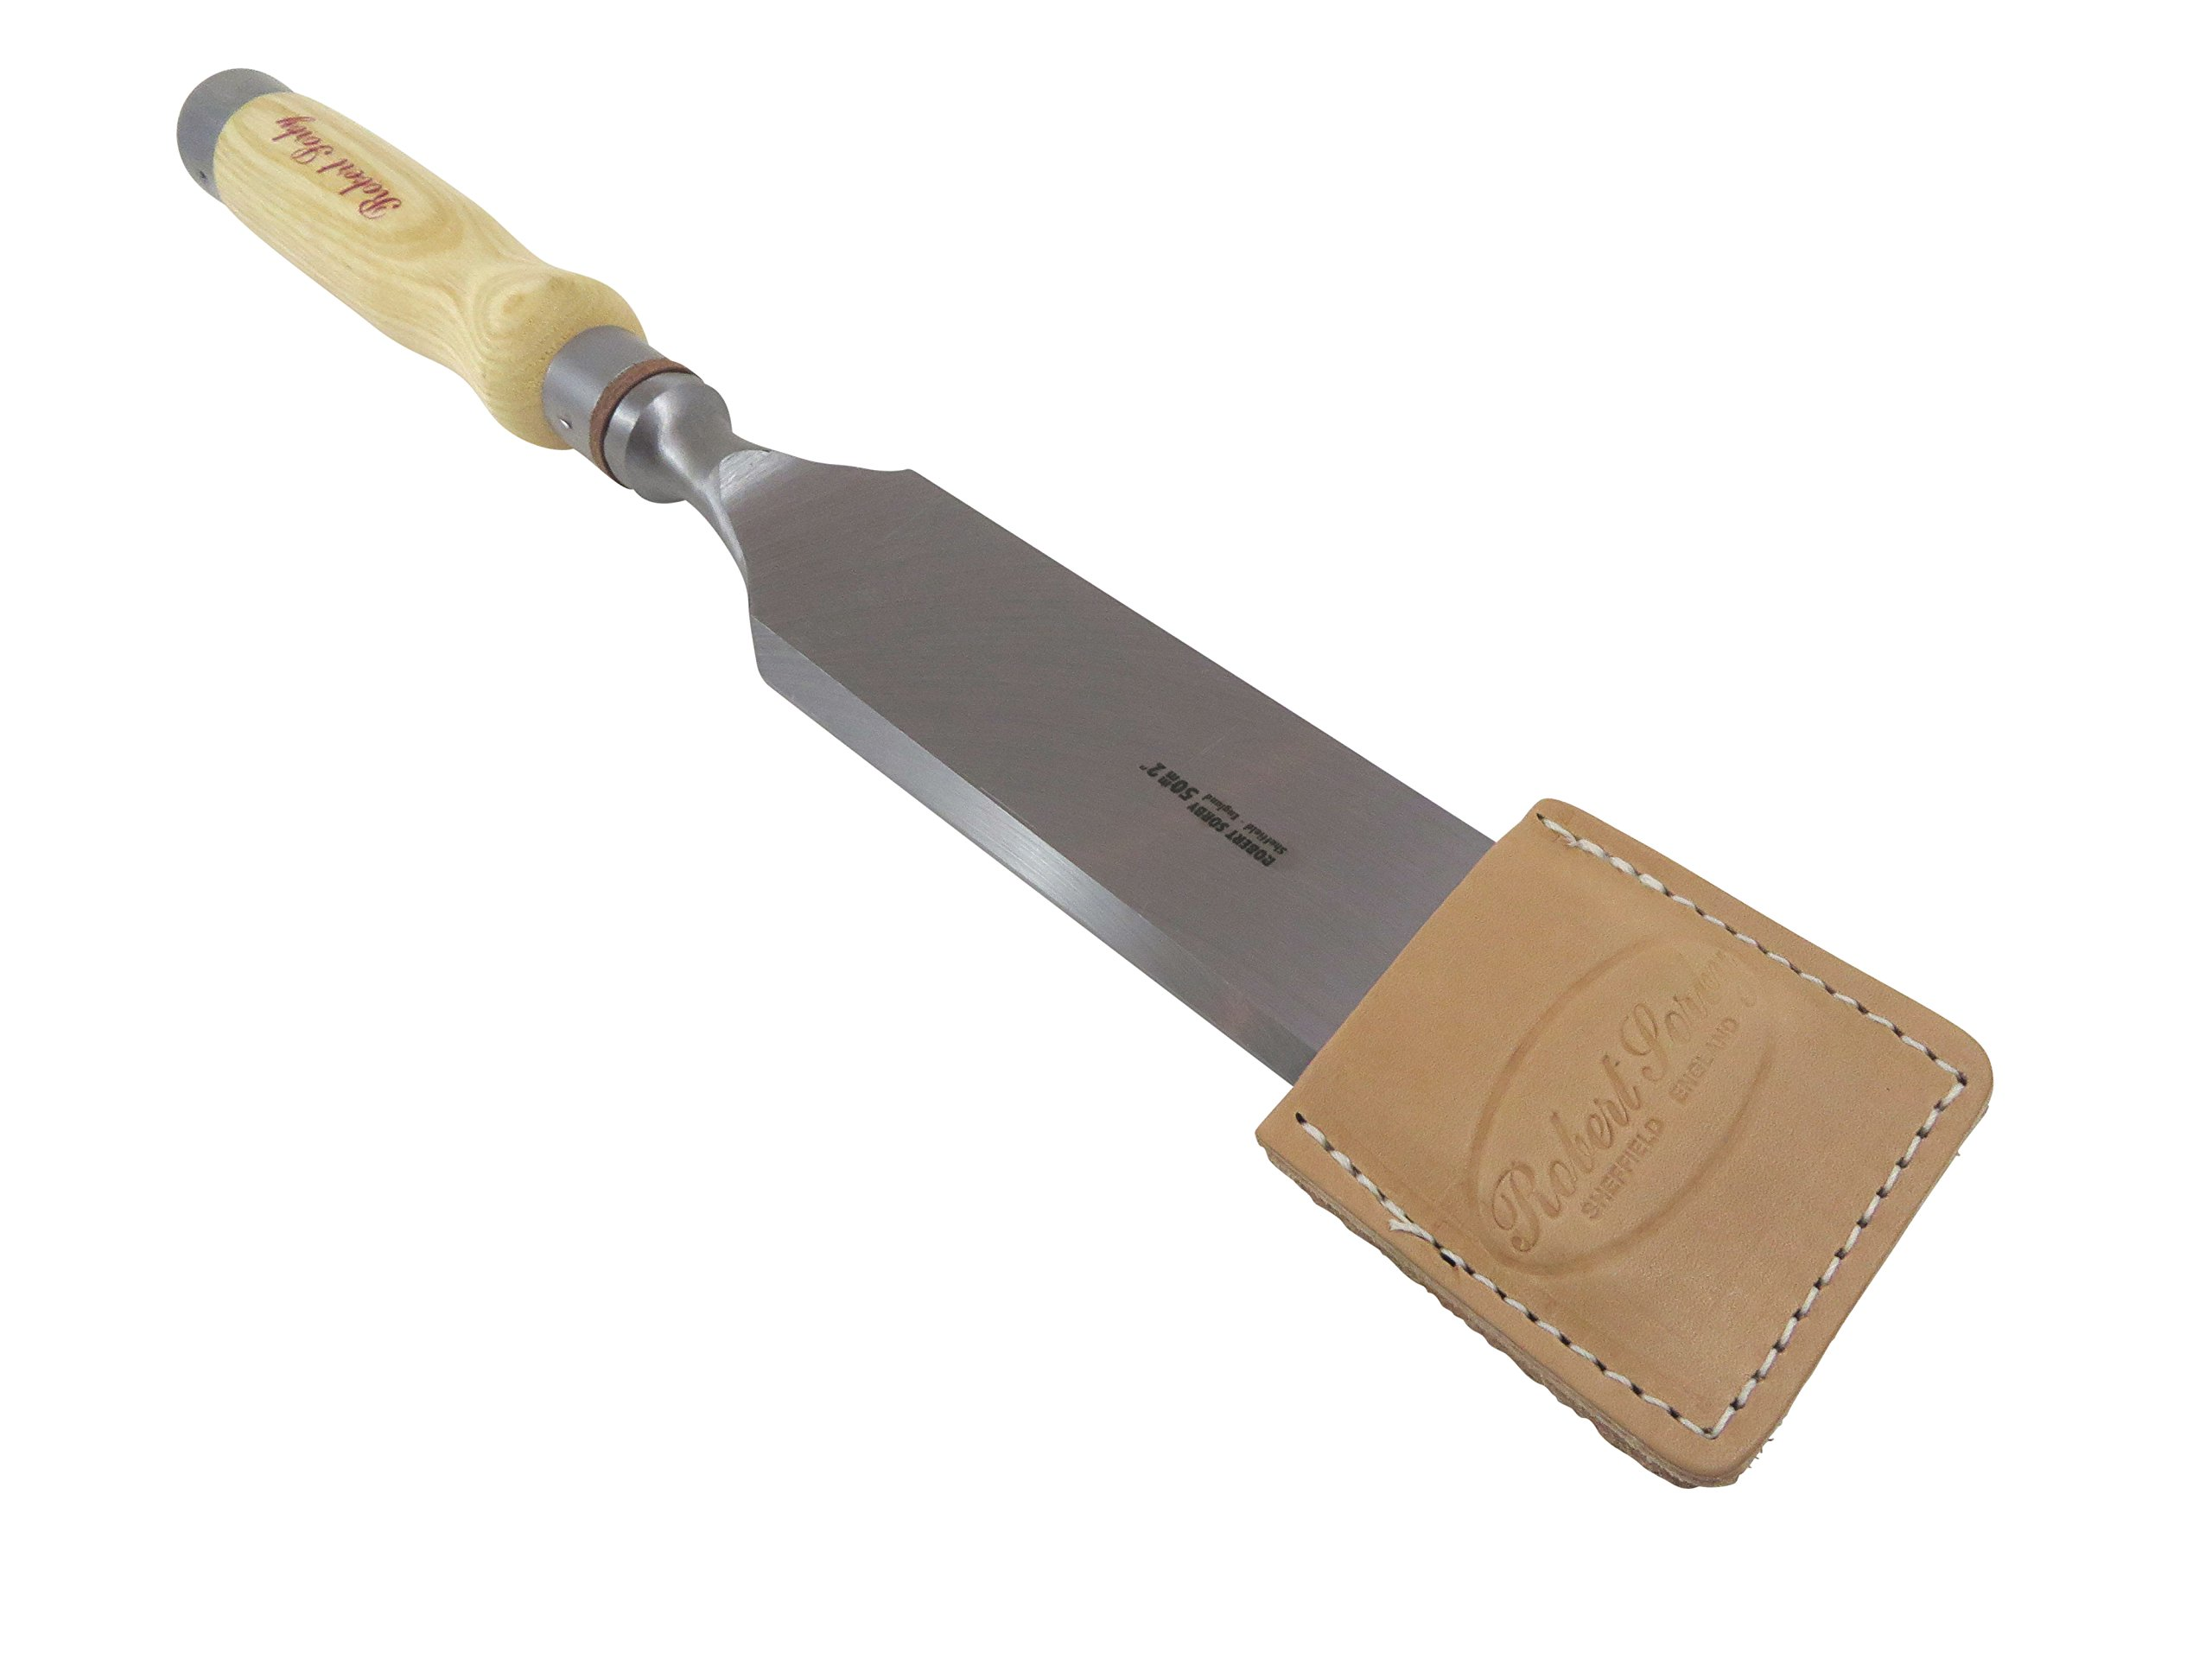 Bundle Robert Sorby 286/285EG50 2'' Timber Framing Chisel with Beveled Edges and Leather Edge Guard 15-1/2 Overall Length